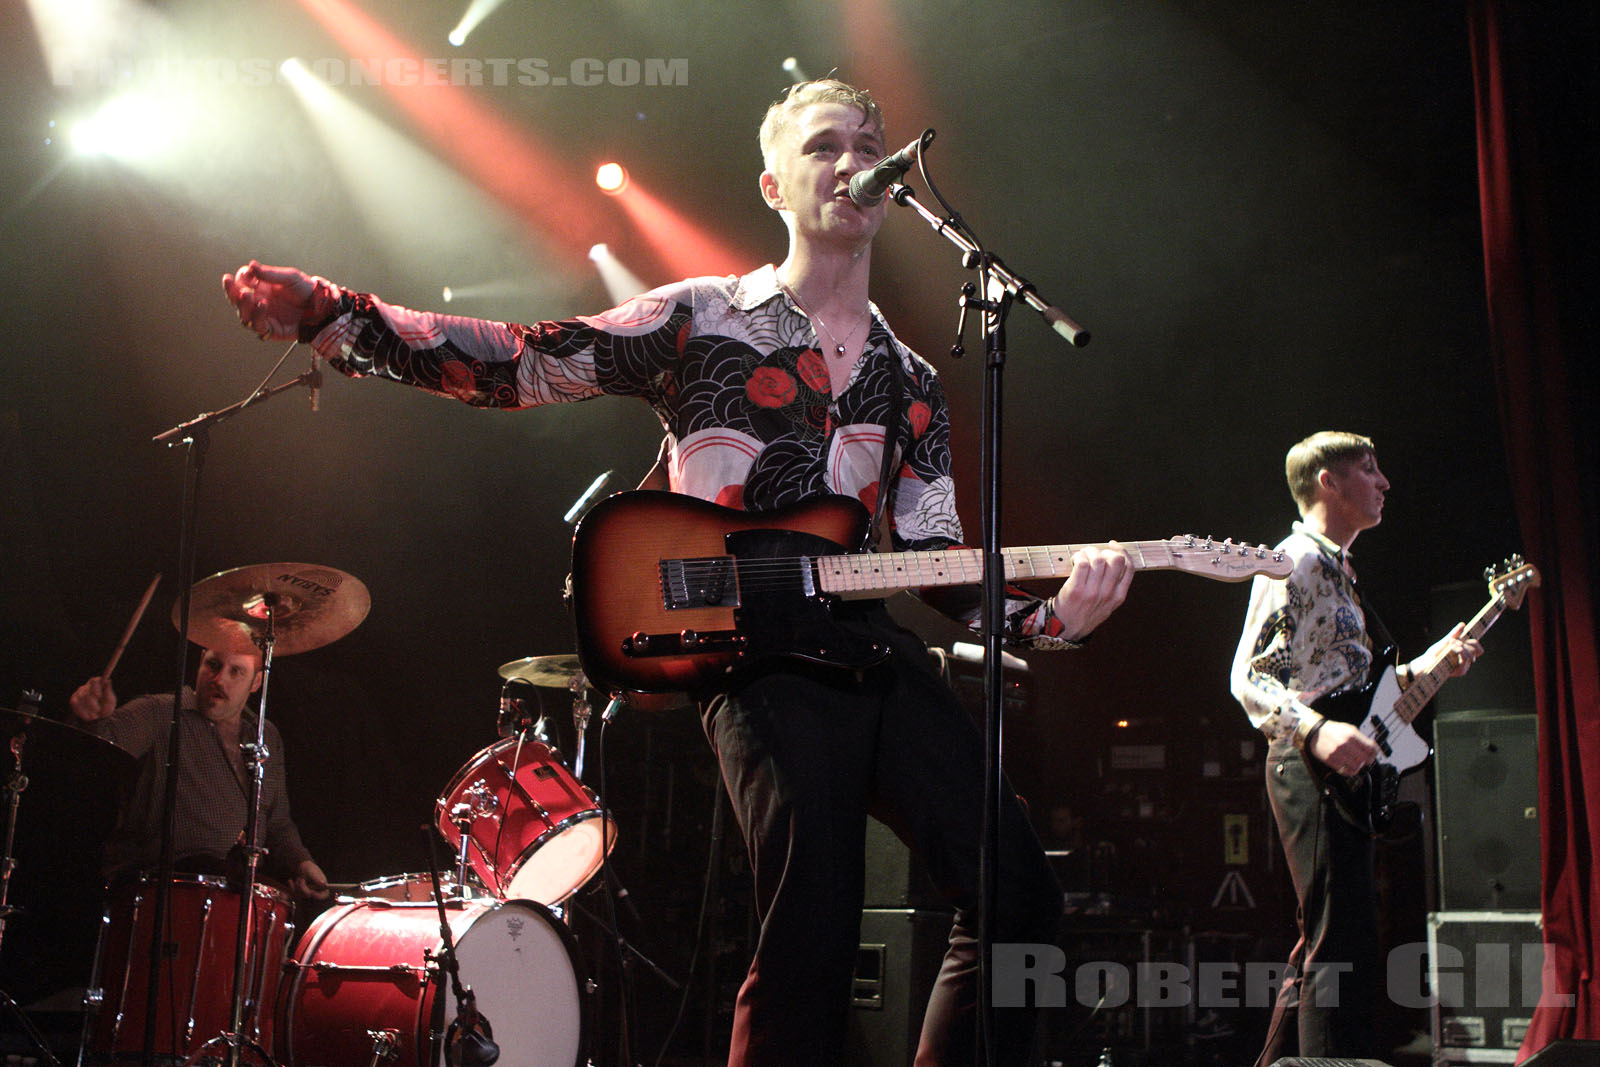 THE AMAZING SNAKEHEADS - 2013-11-07 - PARIS - La Cigale